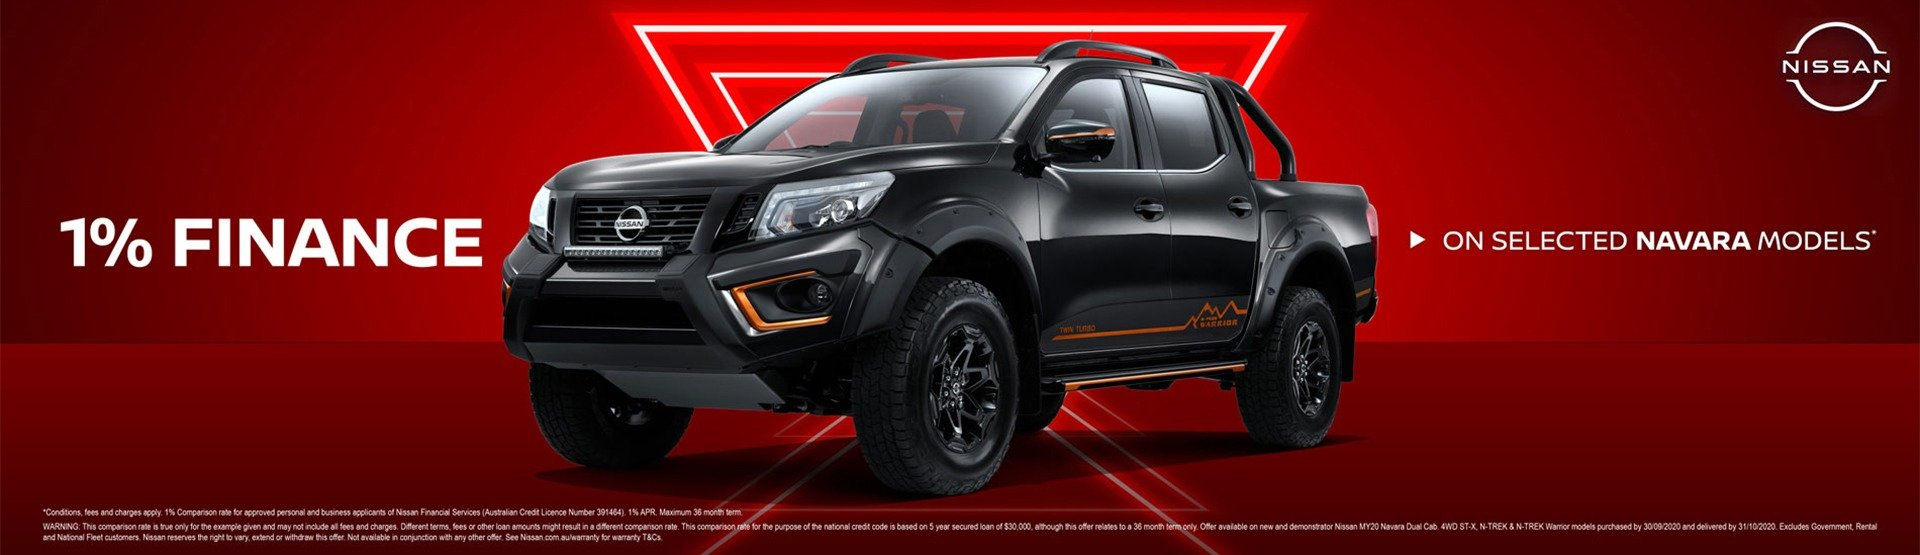 ParryNQ Nissan - 1% Navara Finance offer